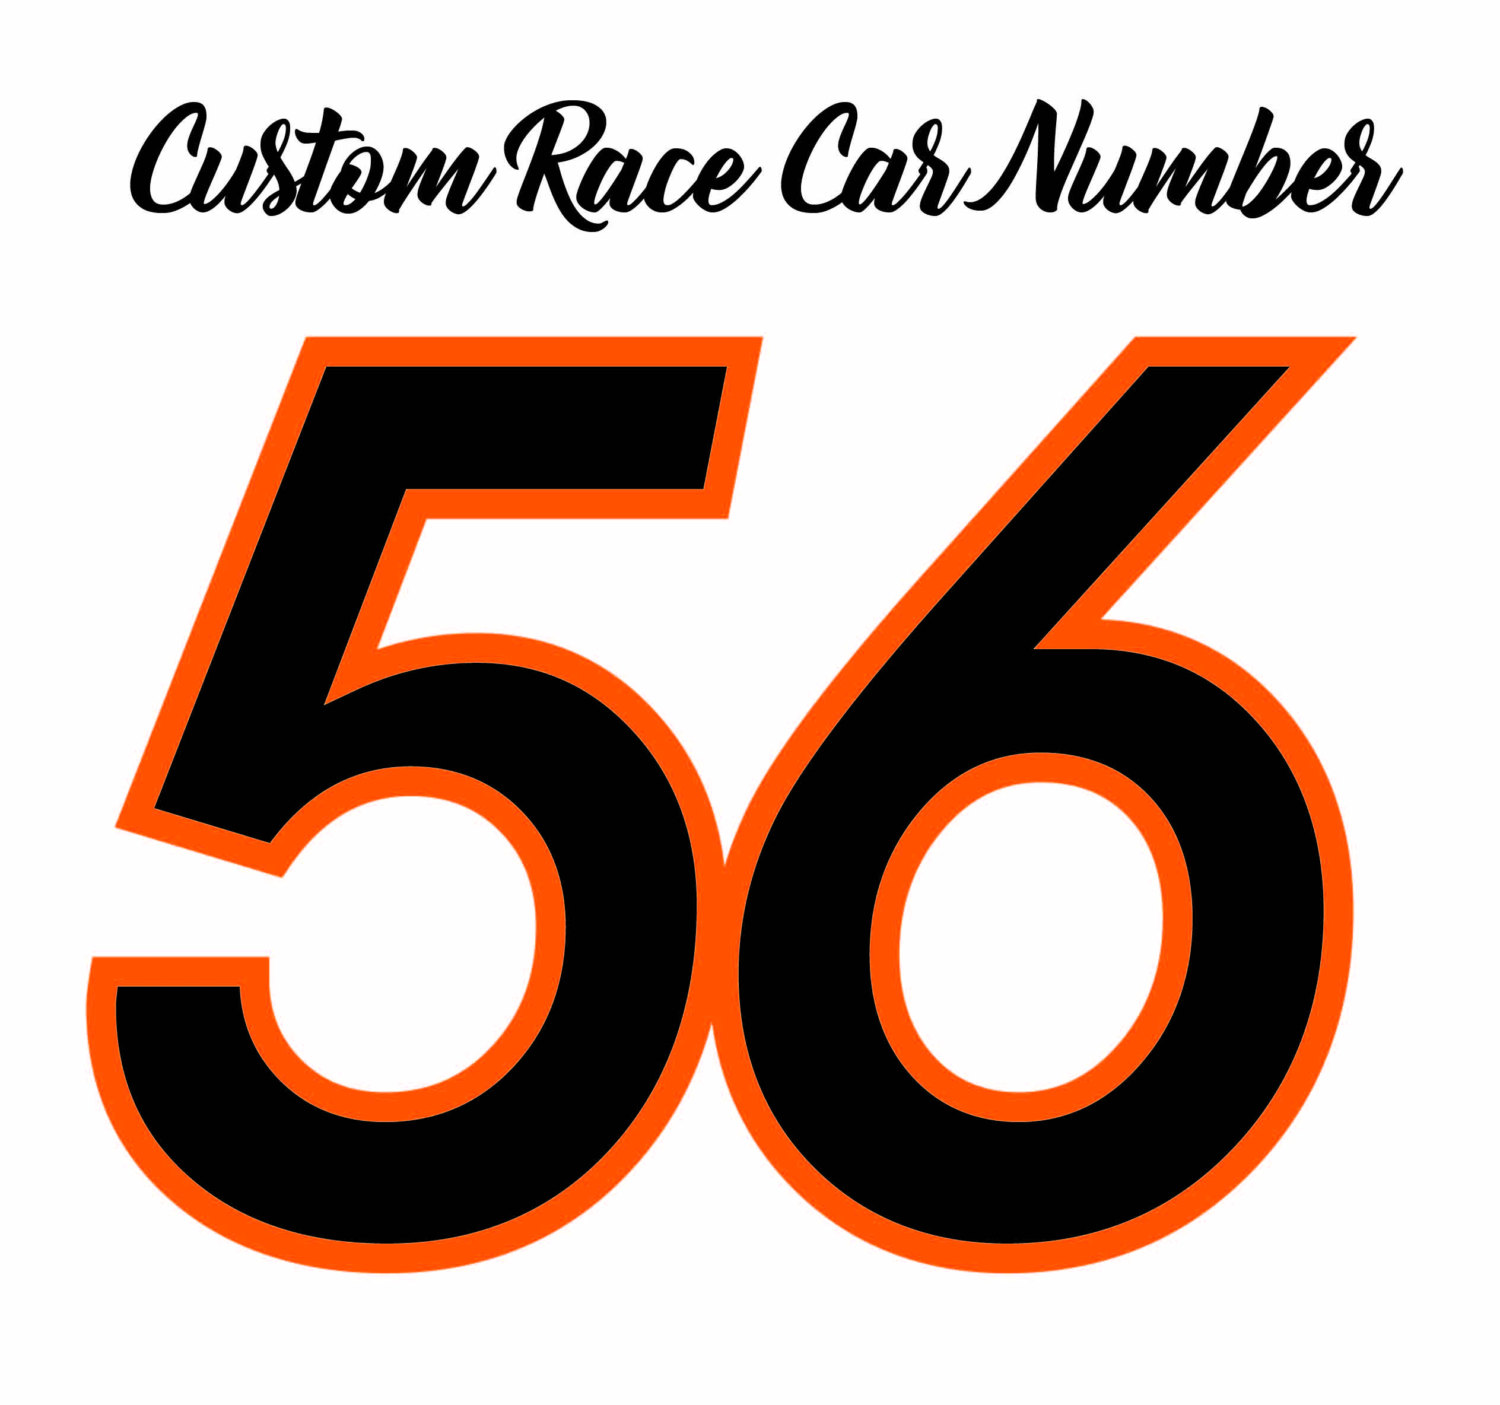 Race Car Number Package Racing Stickers Race Number Kit Racing